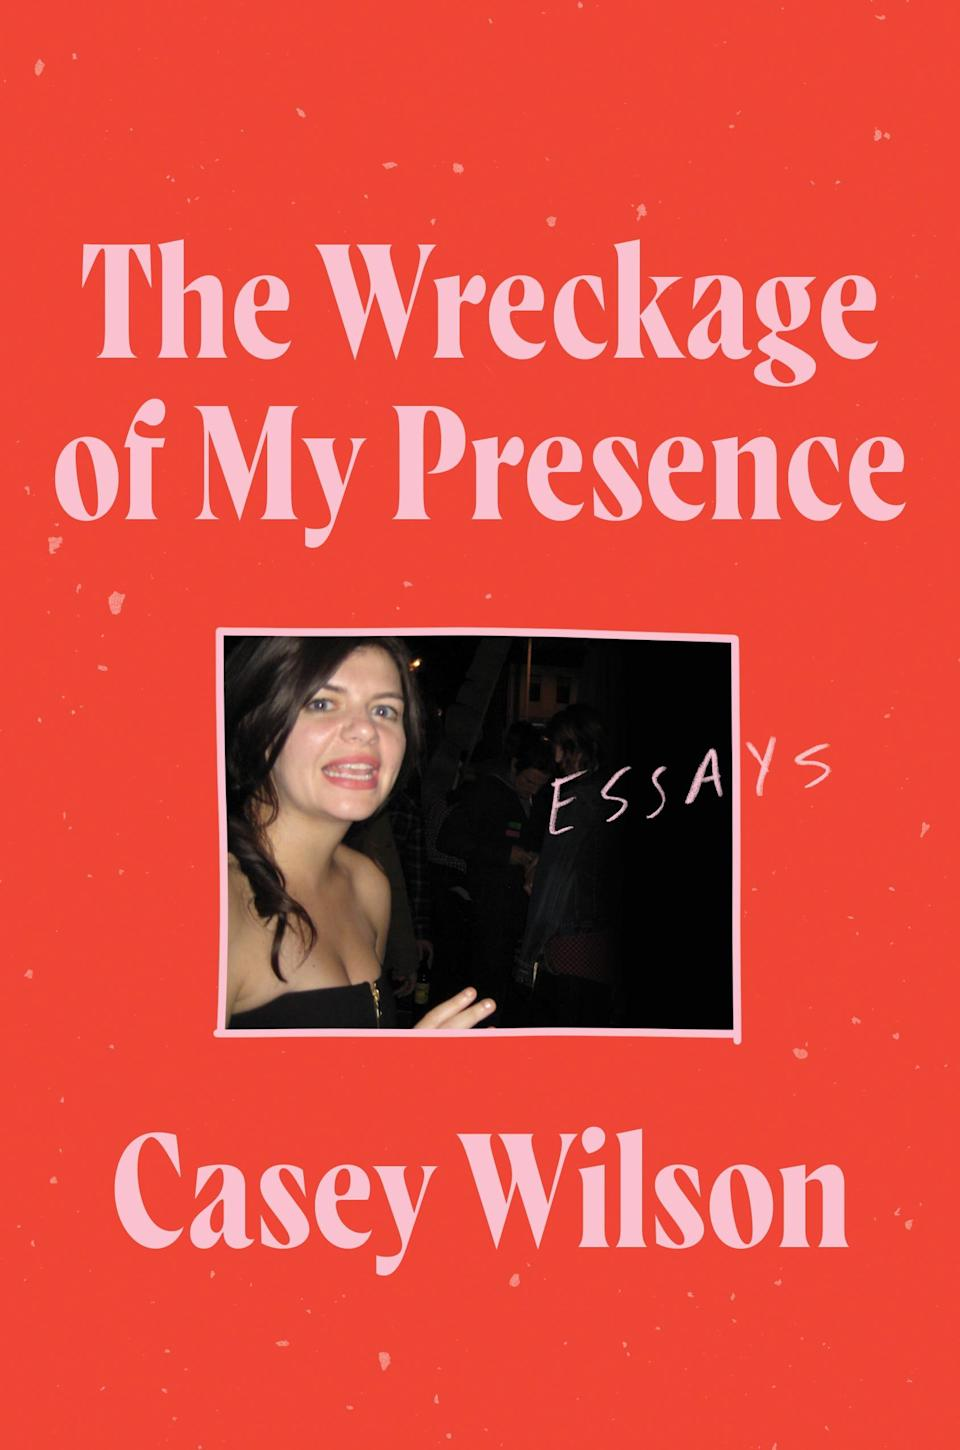 The cover of Wilson's book, available now.